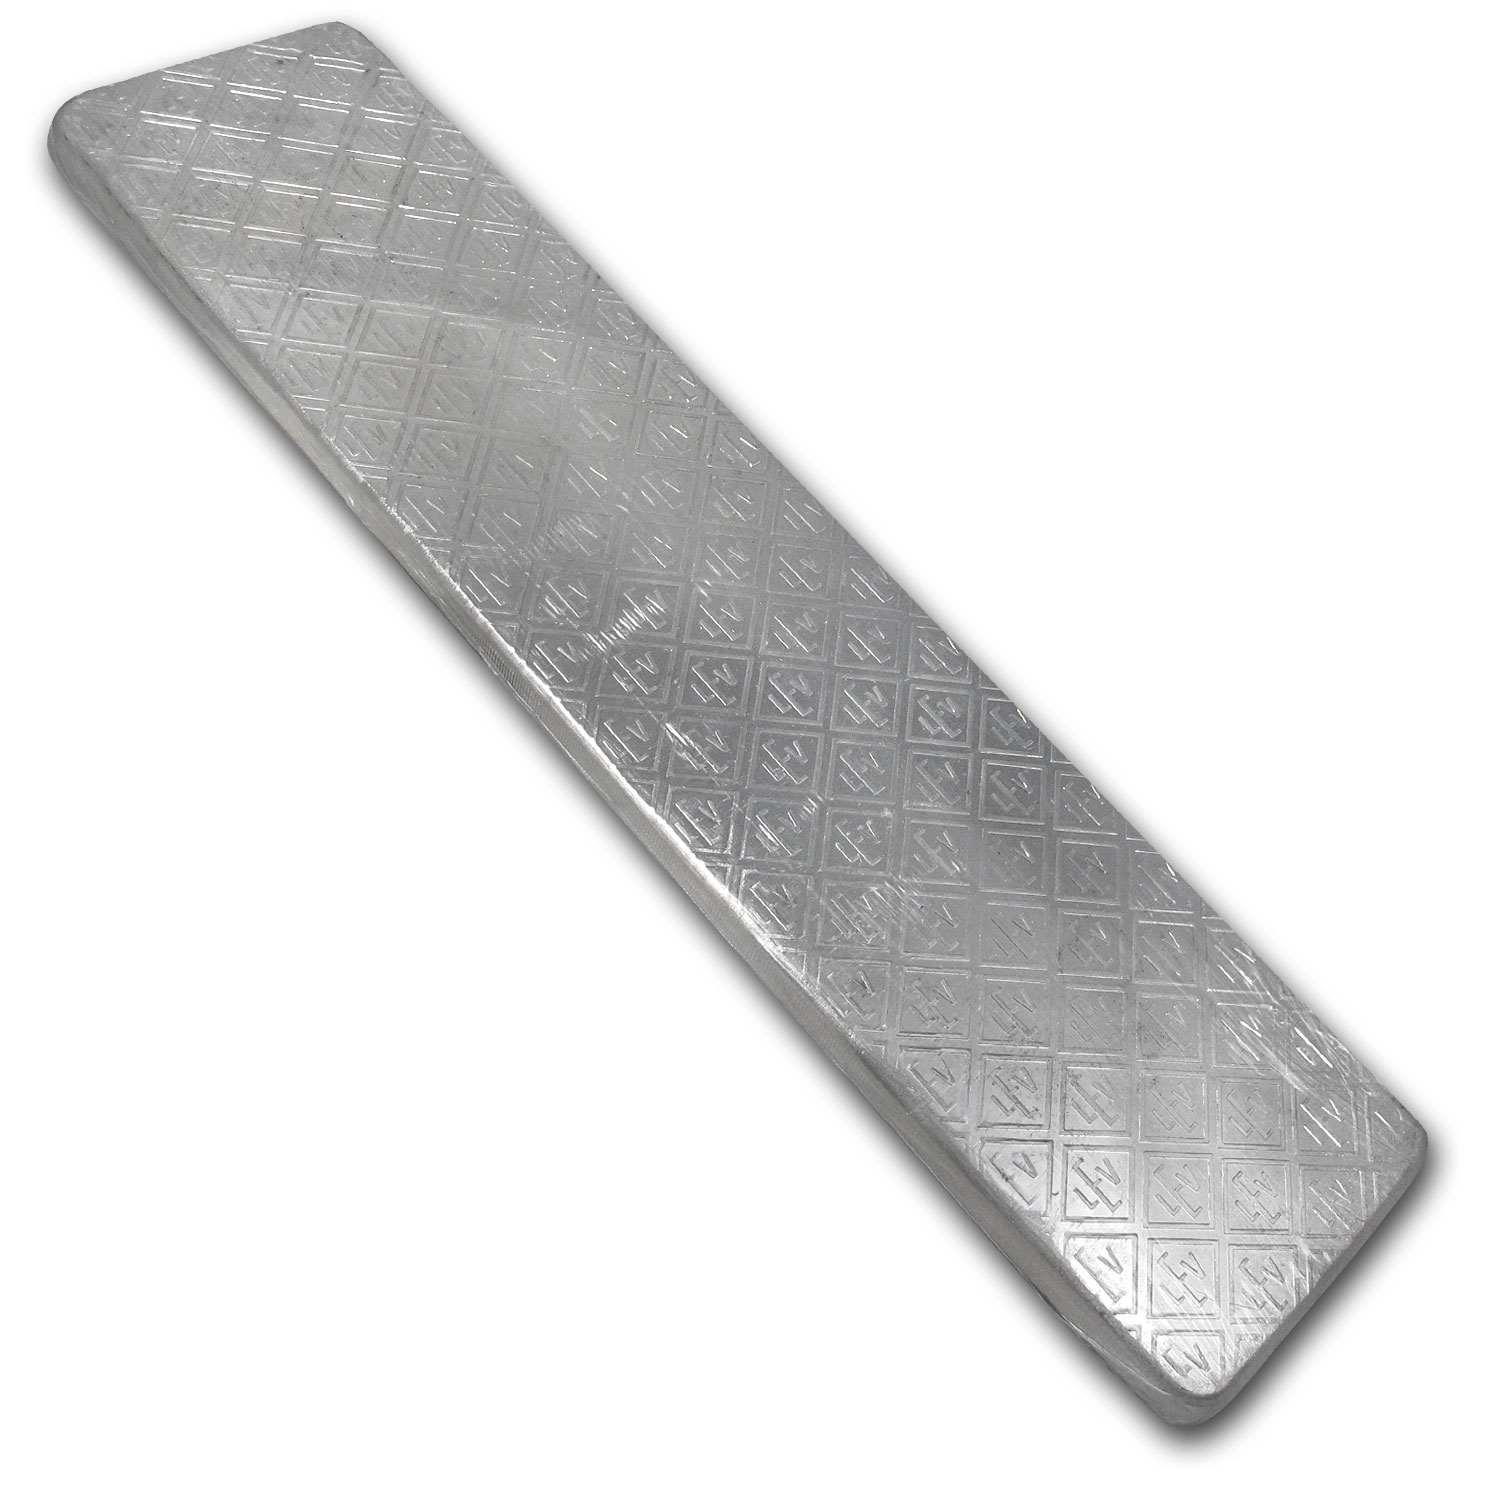 100 oz Silver Bar - Geiger (Security Line Series) - Old Design